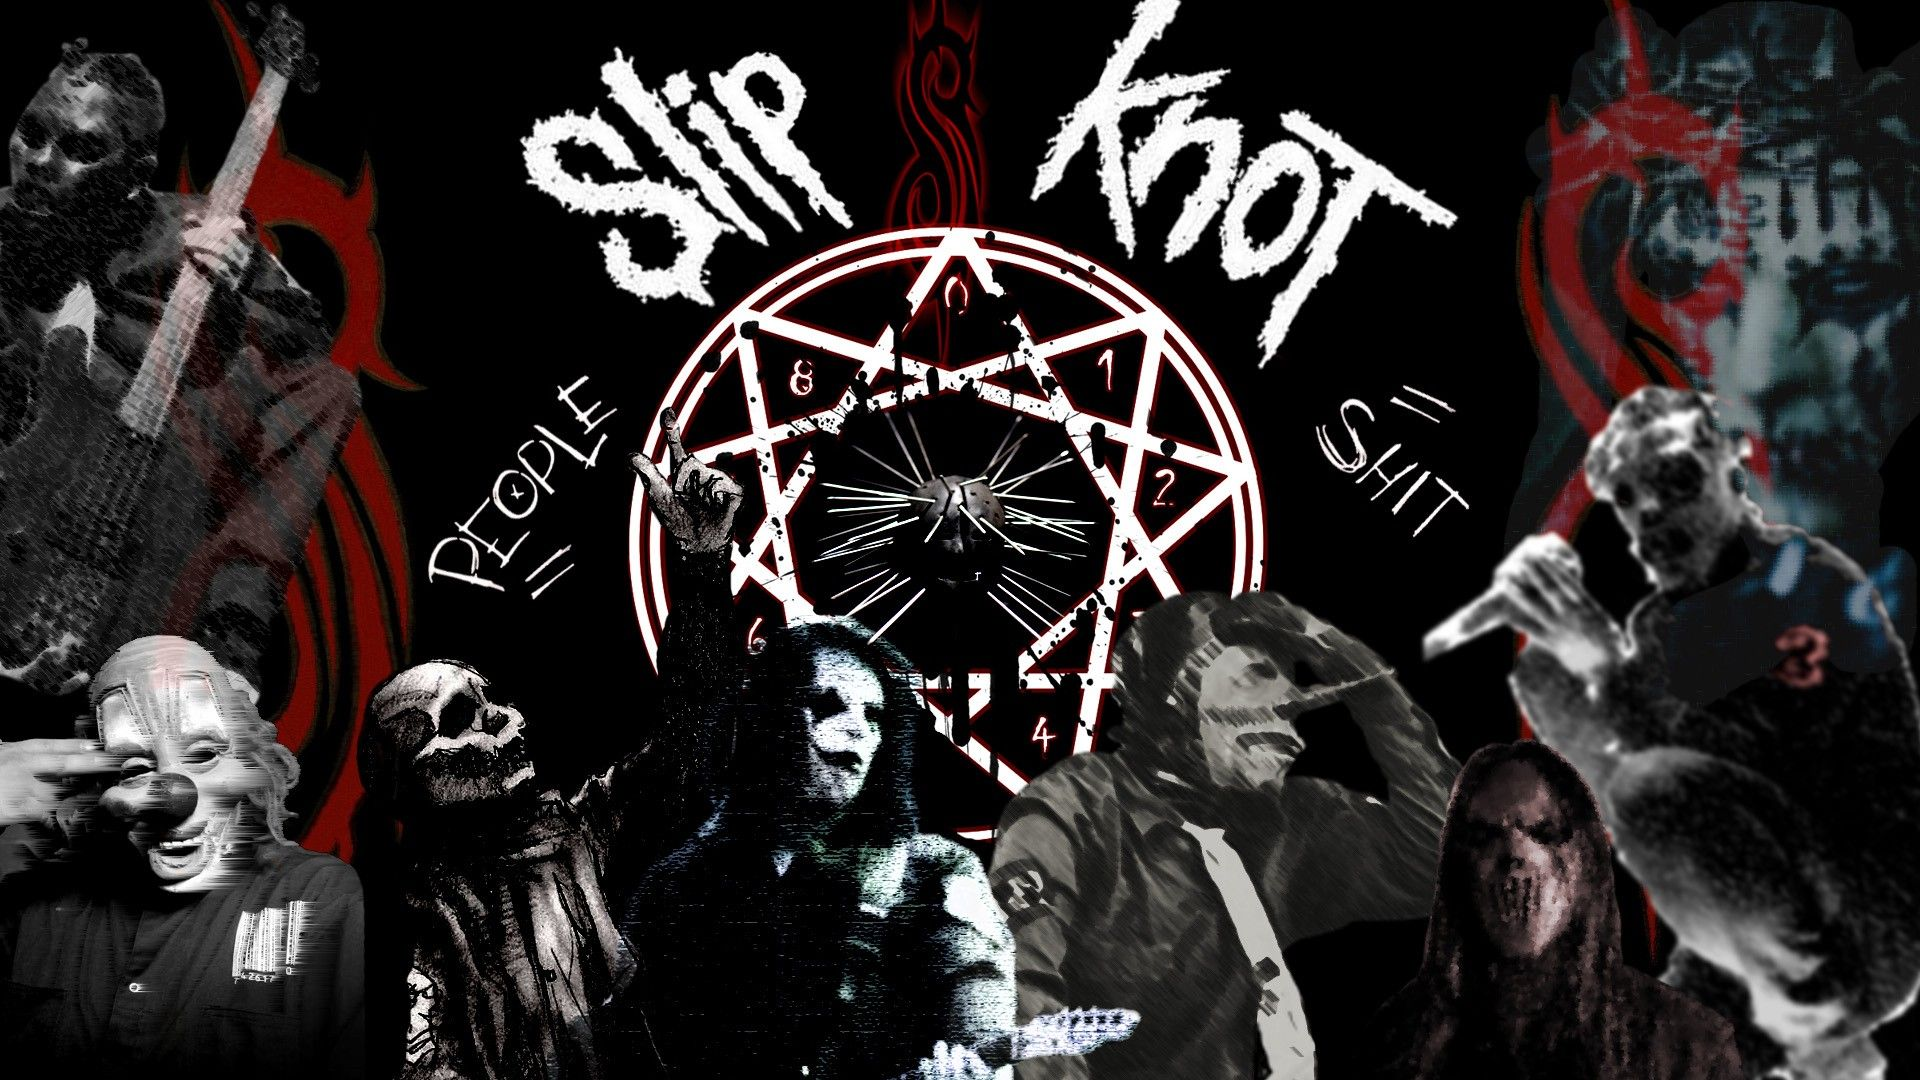 Best Of Slipknot Screensavers Free Slipknot, Heavy metal